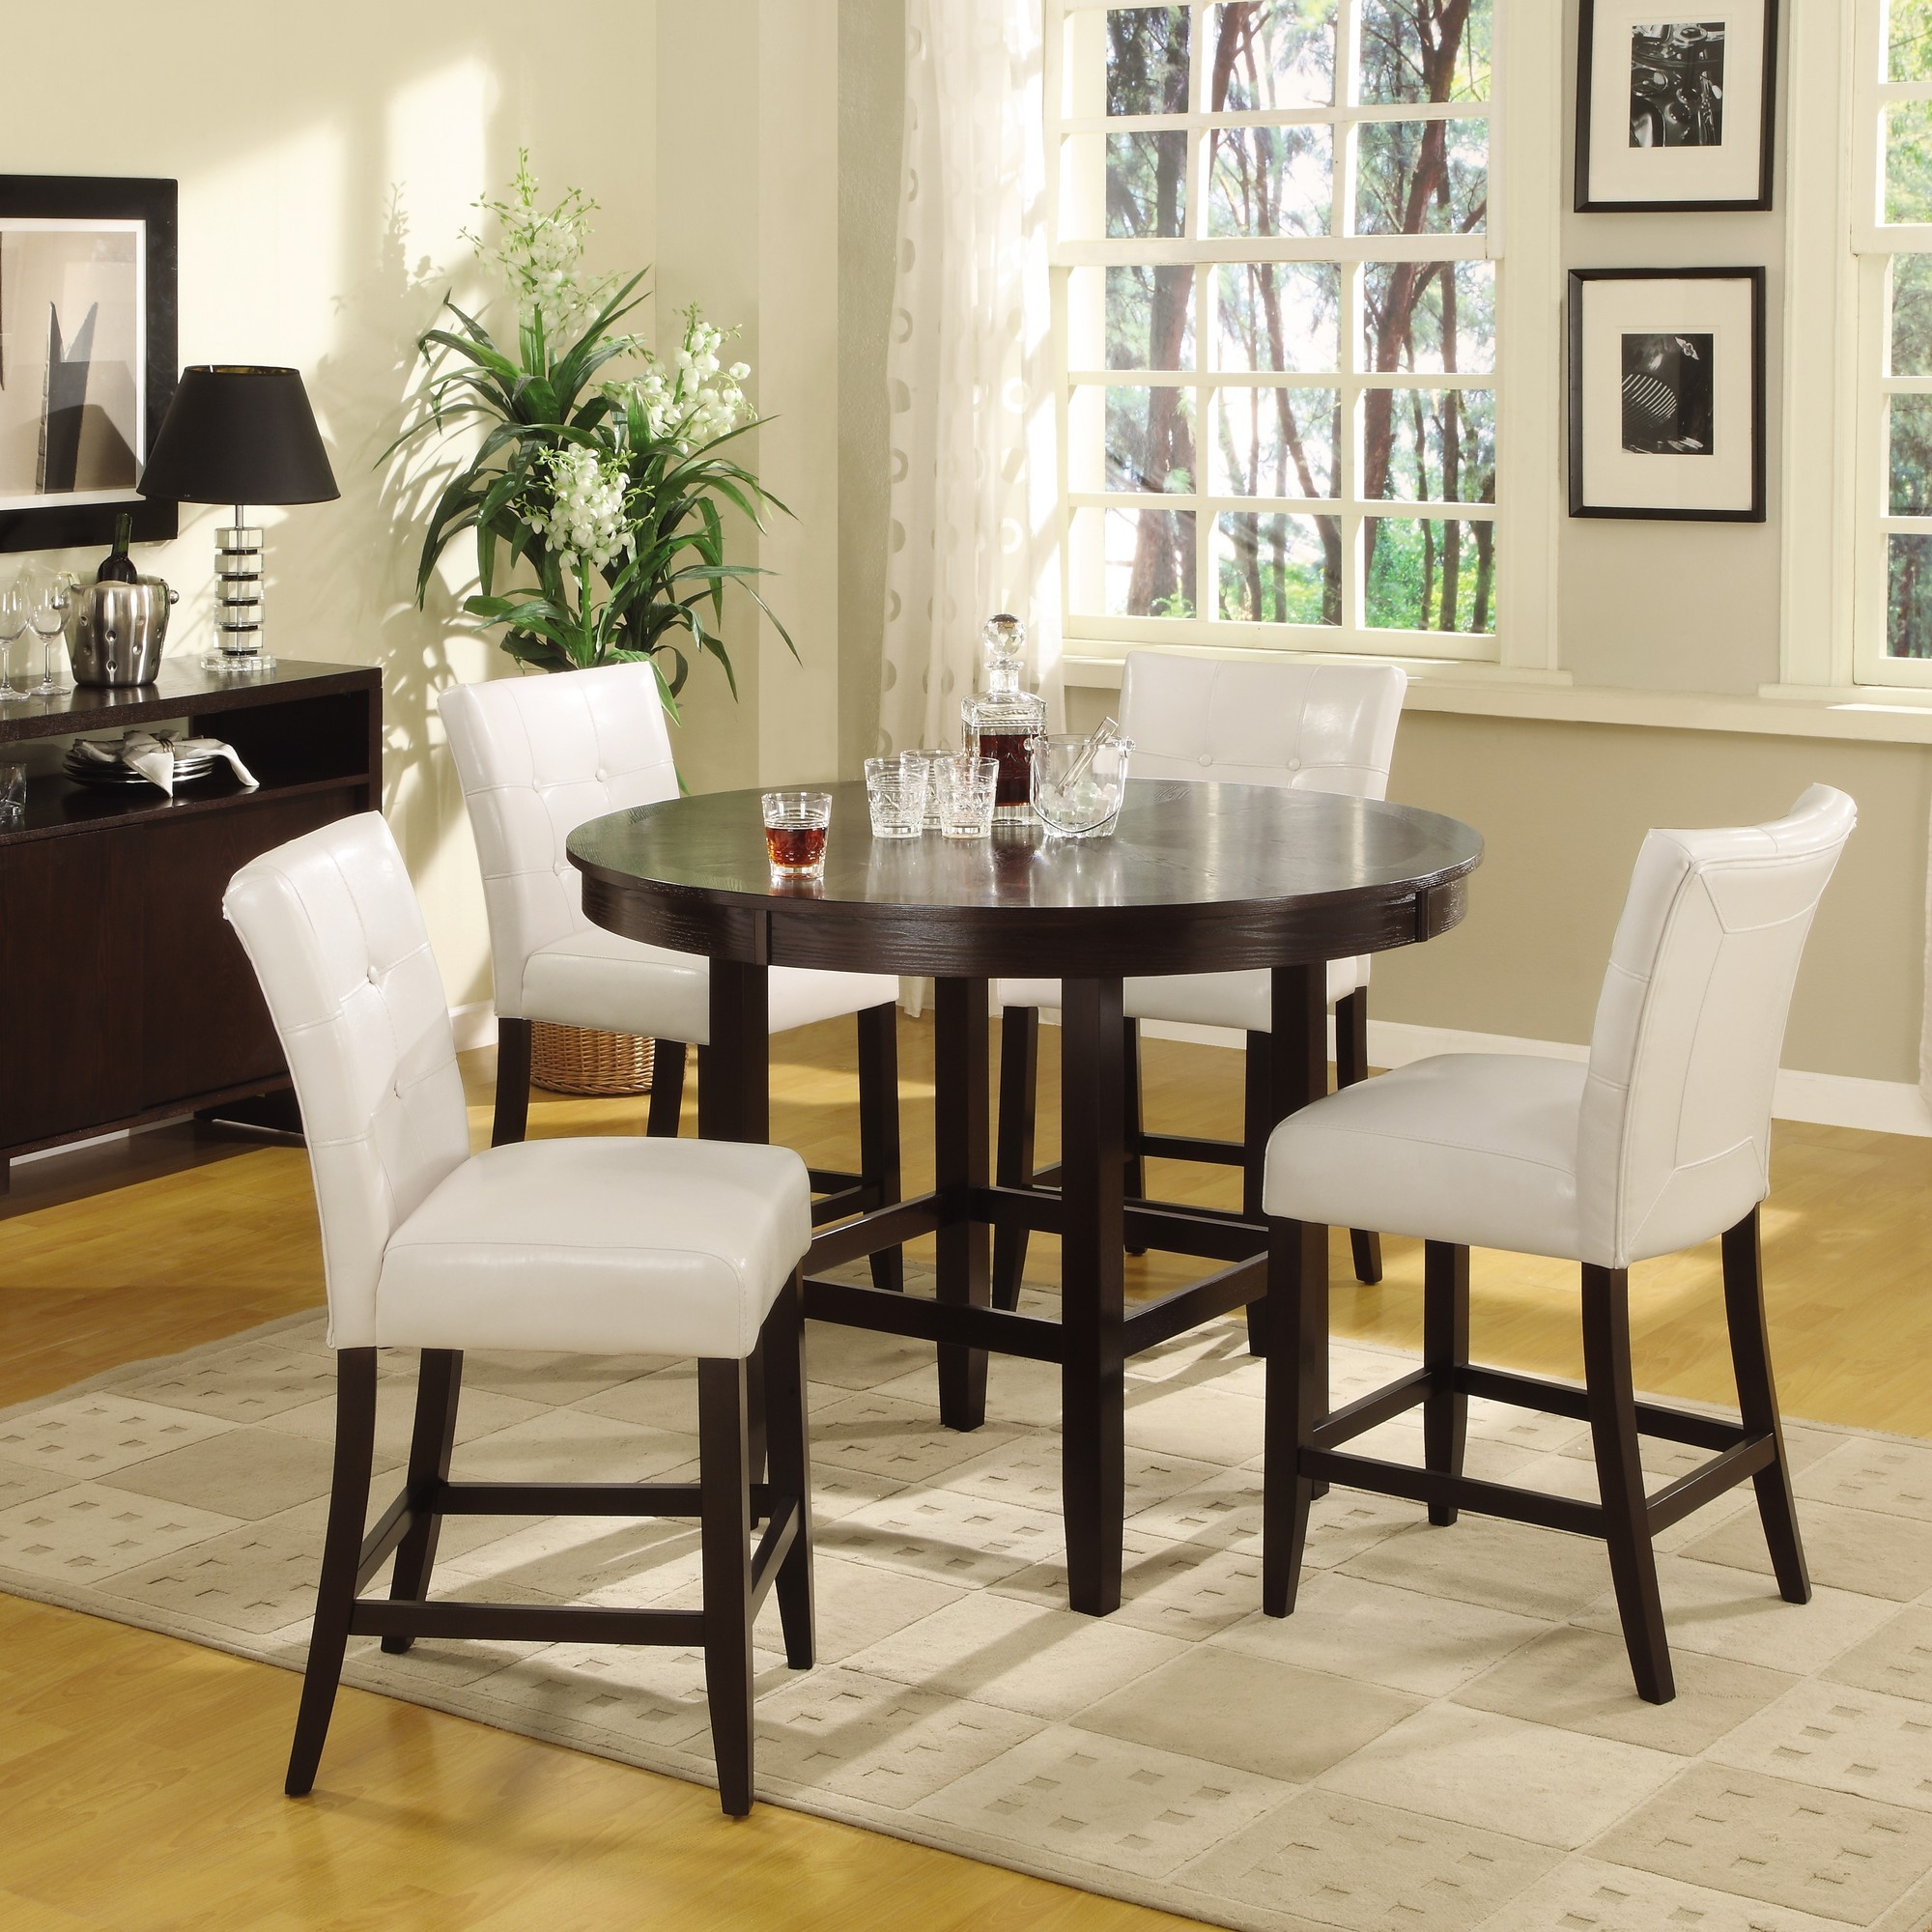 Five Piece Dining Room Sets Amazing Unique Modern Dining Room Chairs With S Shape Metal Chairs